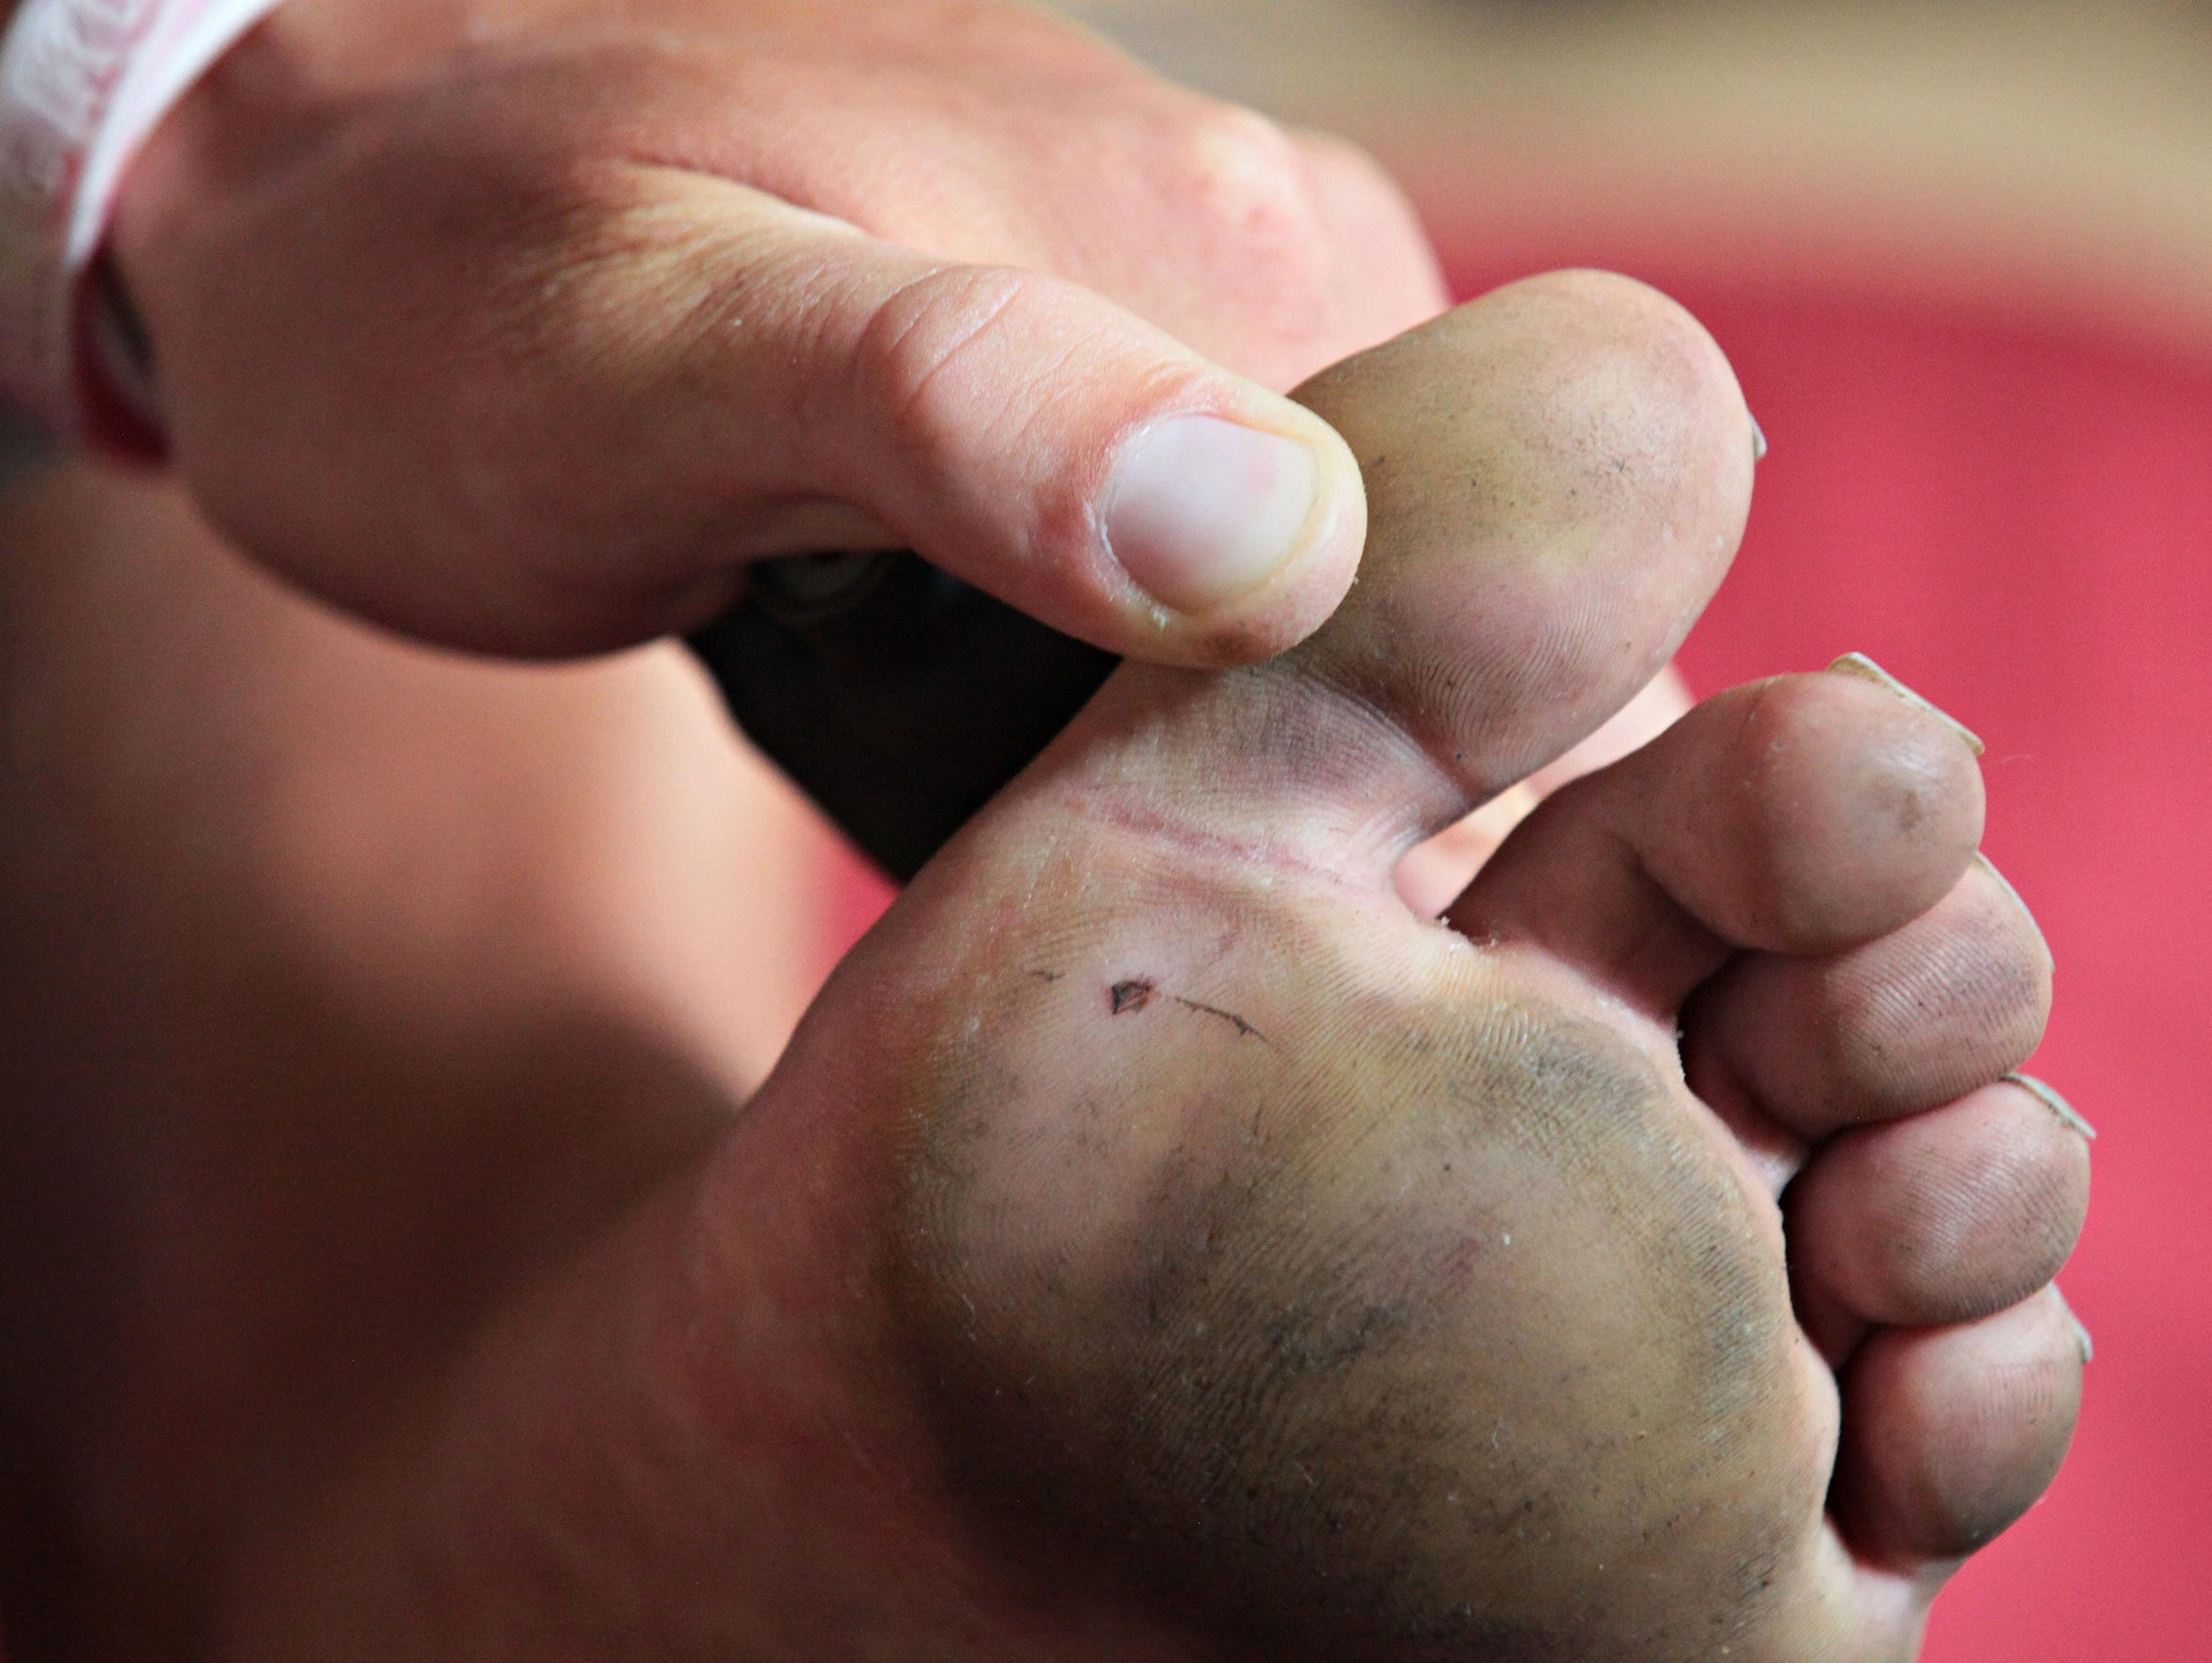 Jake Brown said the only injury to the soles of his